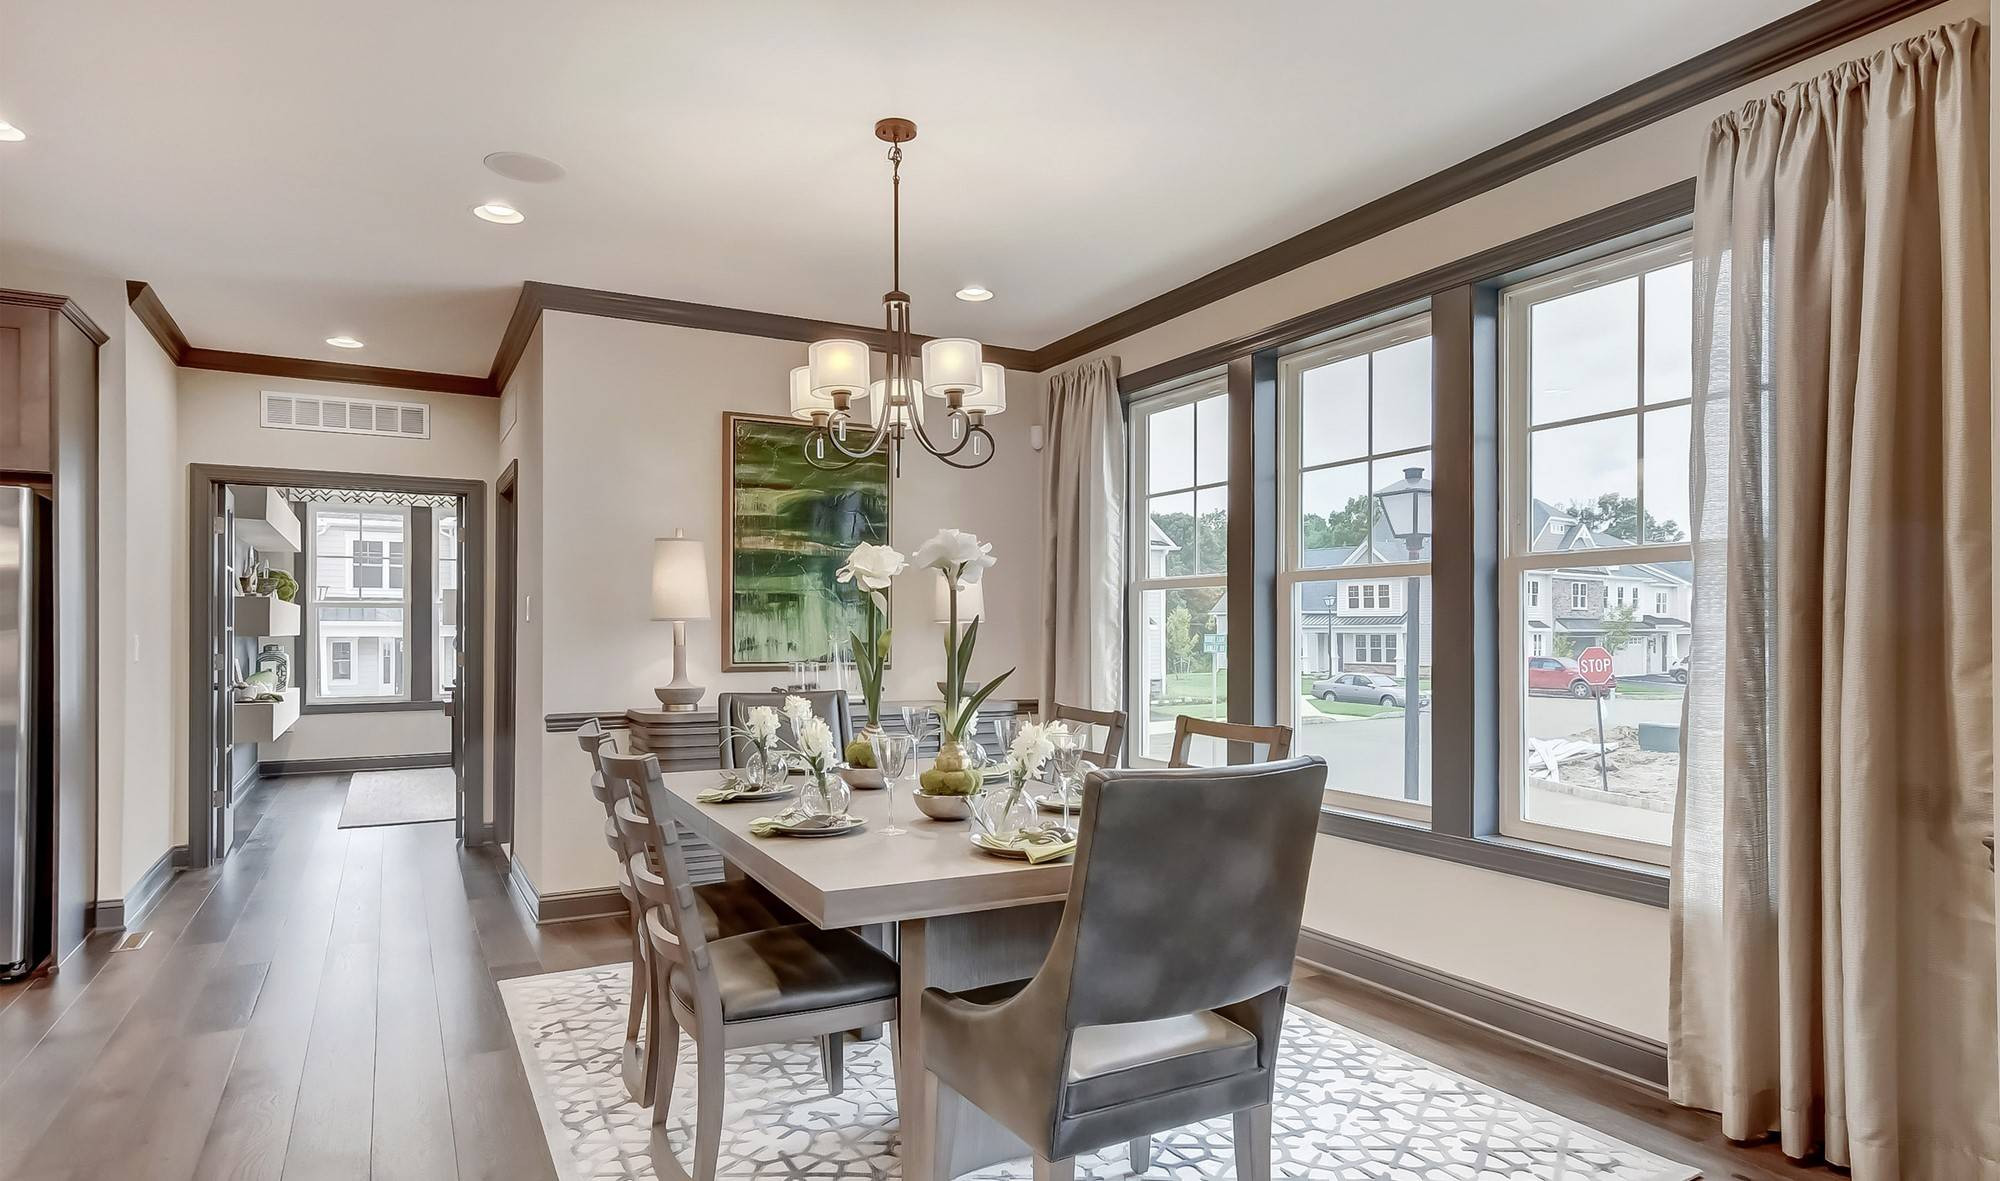 17 Spectacular Hardwood Flooring Inland Empire 2021 free download hardwood flooring inland empire of four ponds at lincroft wheaton throughout cozy dining area